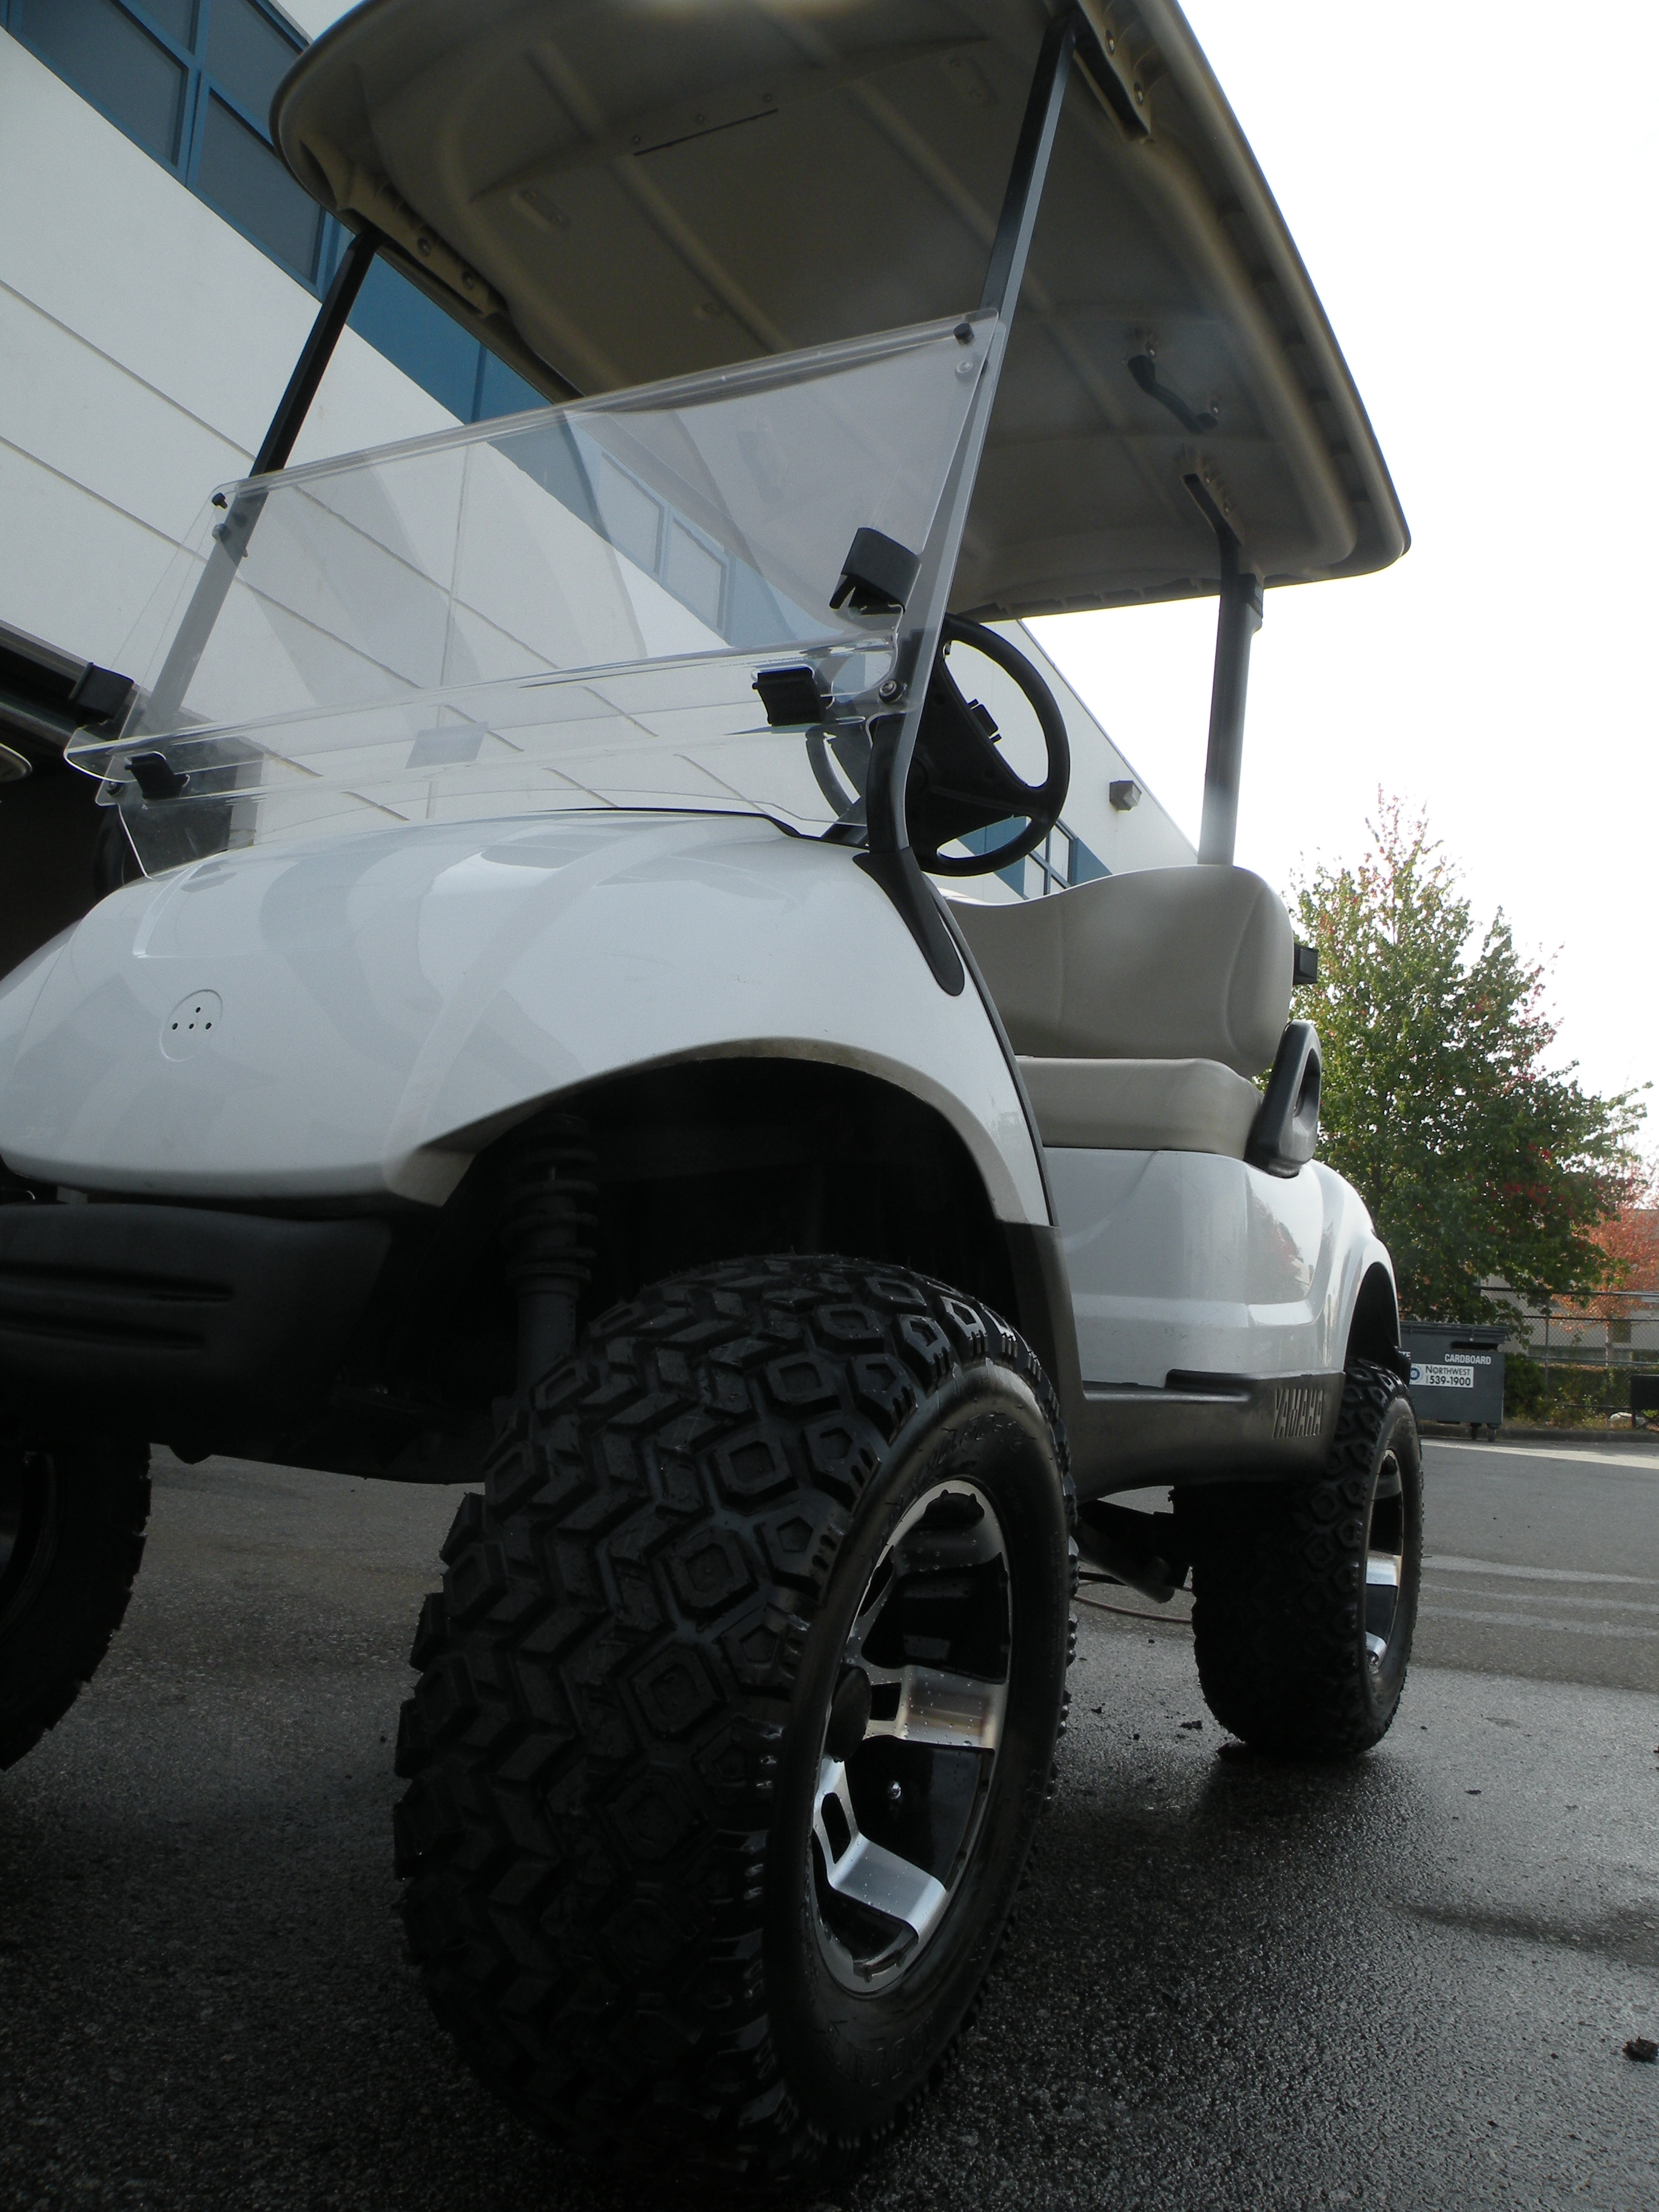 3 Tips before Purchasing Golf Cart Lift Kits – Willie's Blog  Yamaha Golf Carts Lifted on lifted golf carts ebay, jet-powered golf cart, airbrush custom golf cart, lifted gas golf cart, 4x4 golf cart, red lifted golf cart, 2015 ez go golf cart, lifted off-road golf carts, e-z-go rxv golf cart, best brand gas golf cart, used street-legal golf cart, used 6 seater golf cart, lifted golf cart tires, redneck golf cart, rat rod golf cart, lifted hyundai golf cart, lifted custom golf cart, craigslist harley golf cart, snowboard golf cart, lifted electric golf cart,